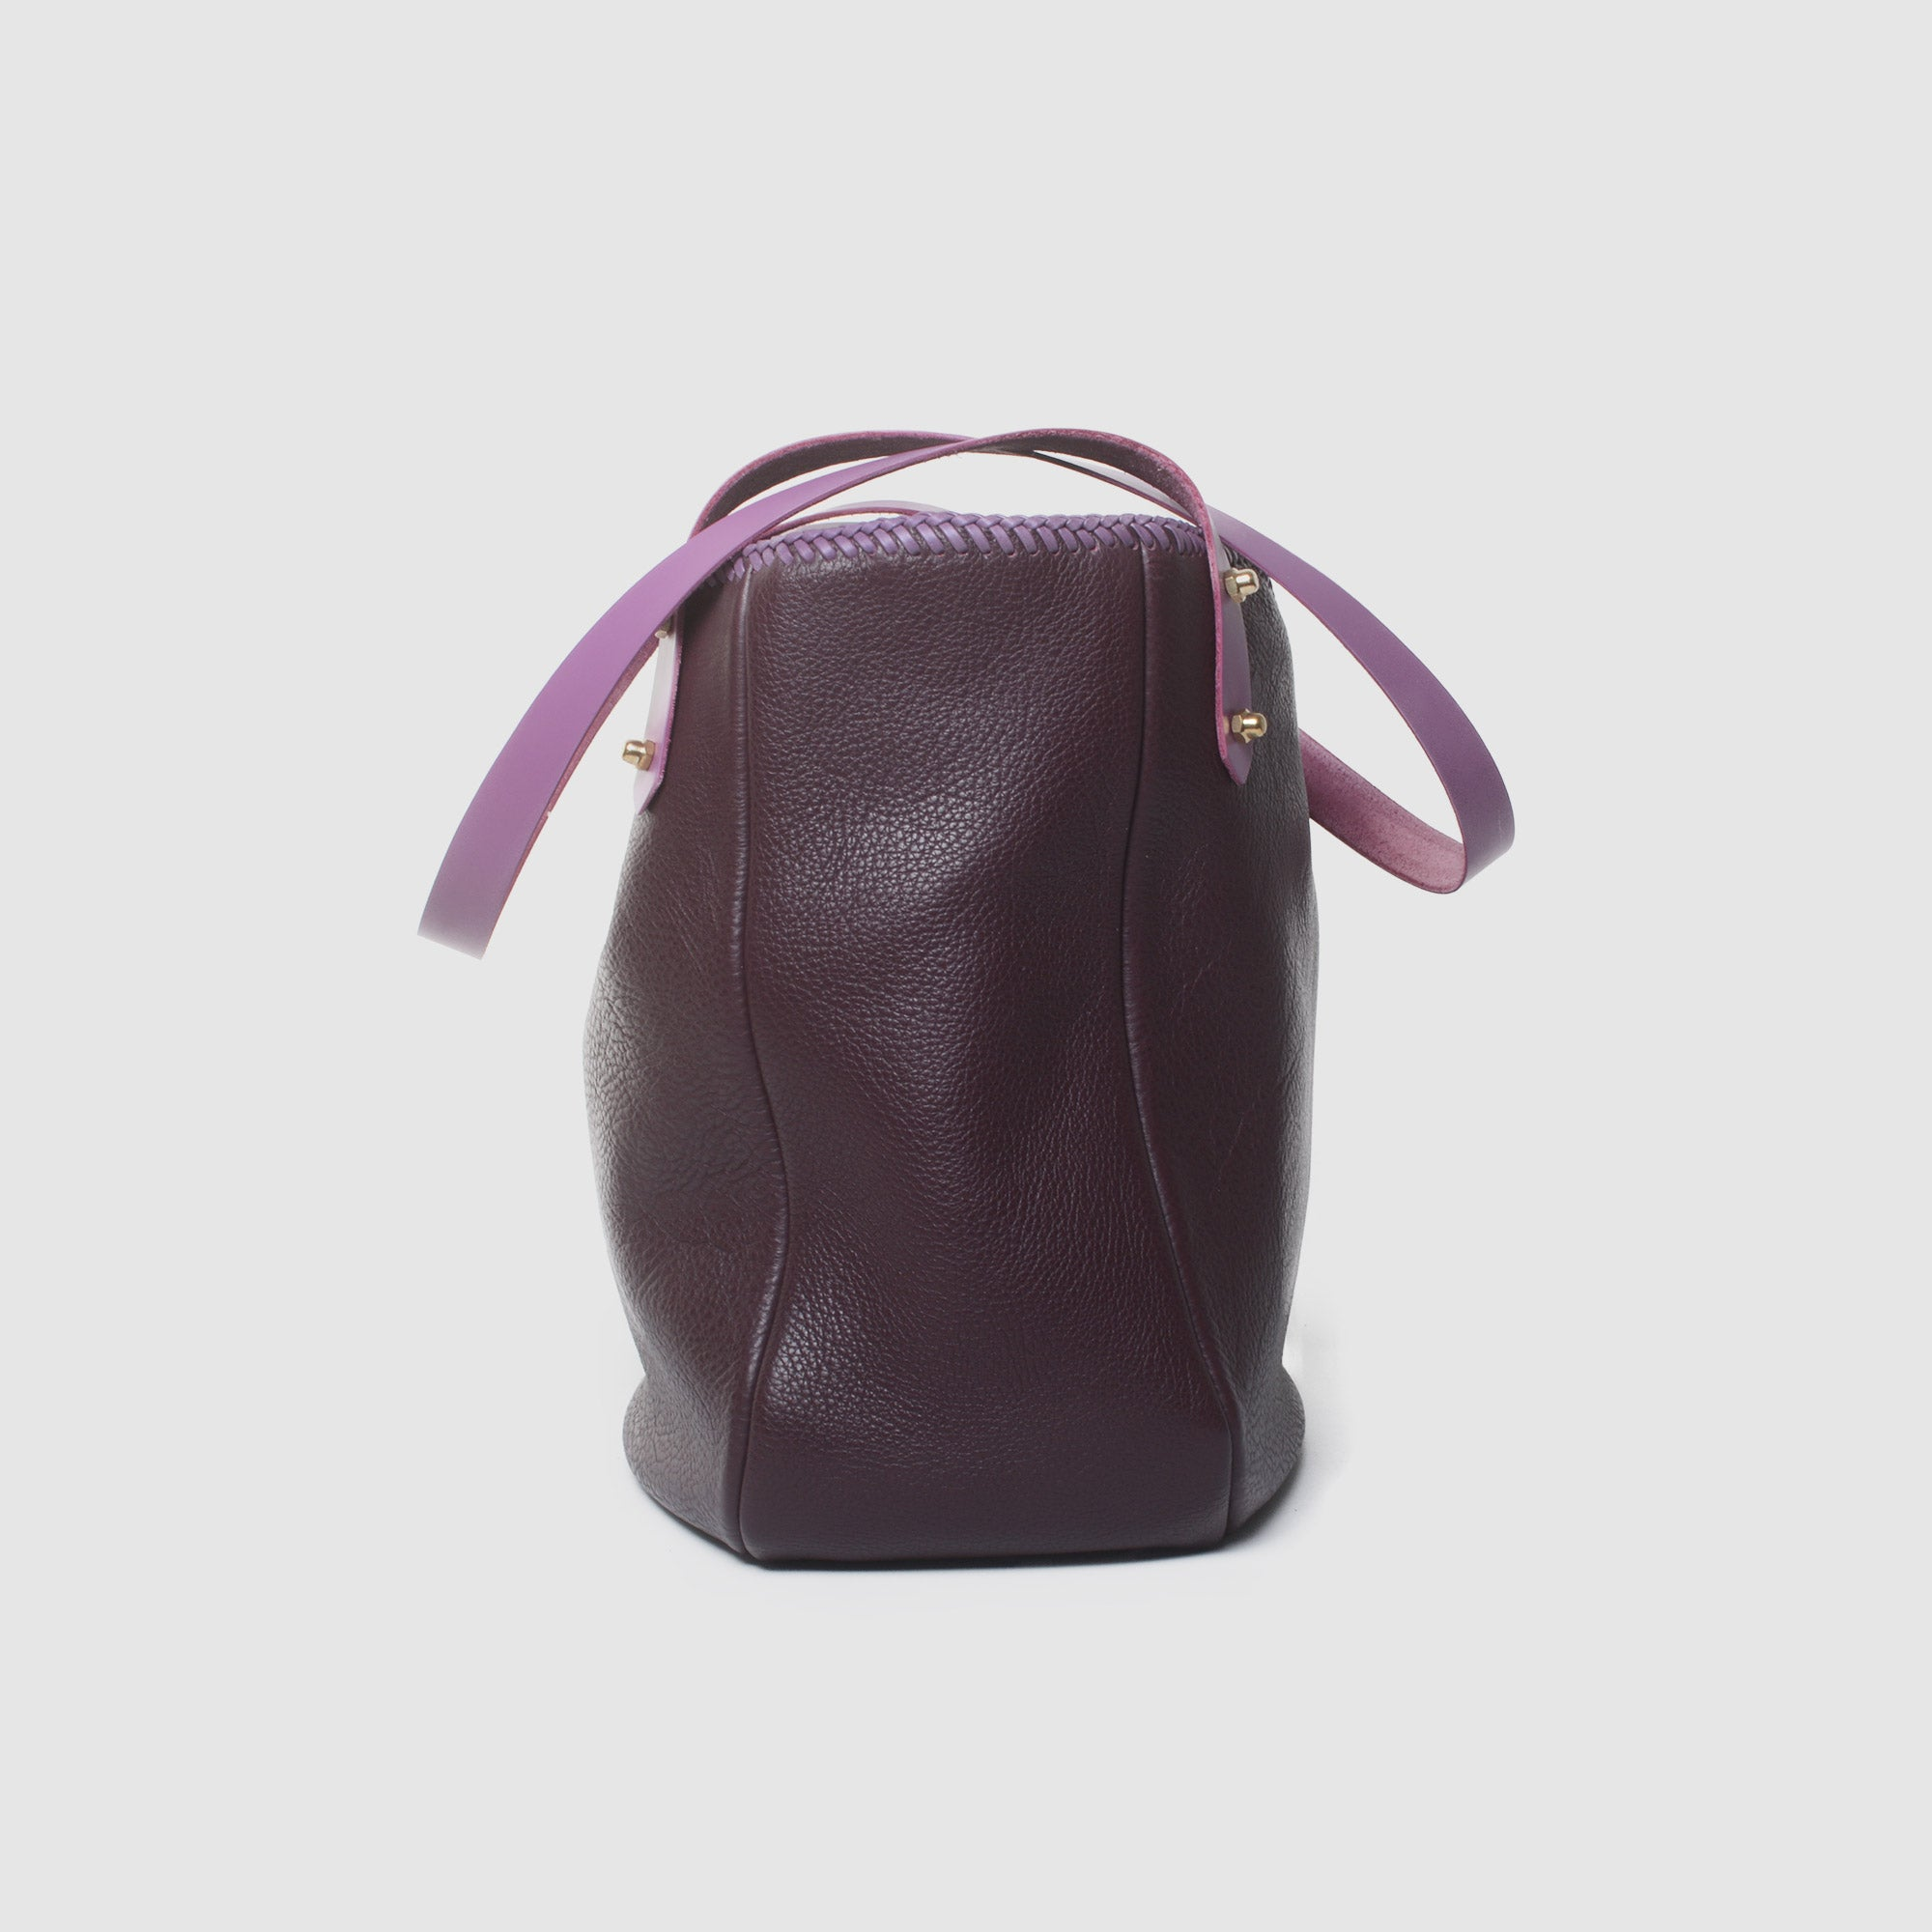 OUTSIDER CARRY ALL // GRAPE & VIOLET